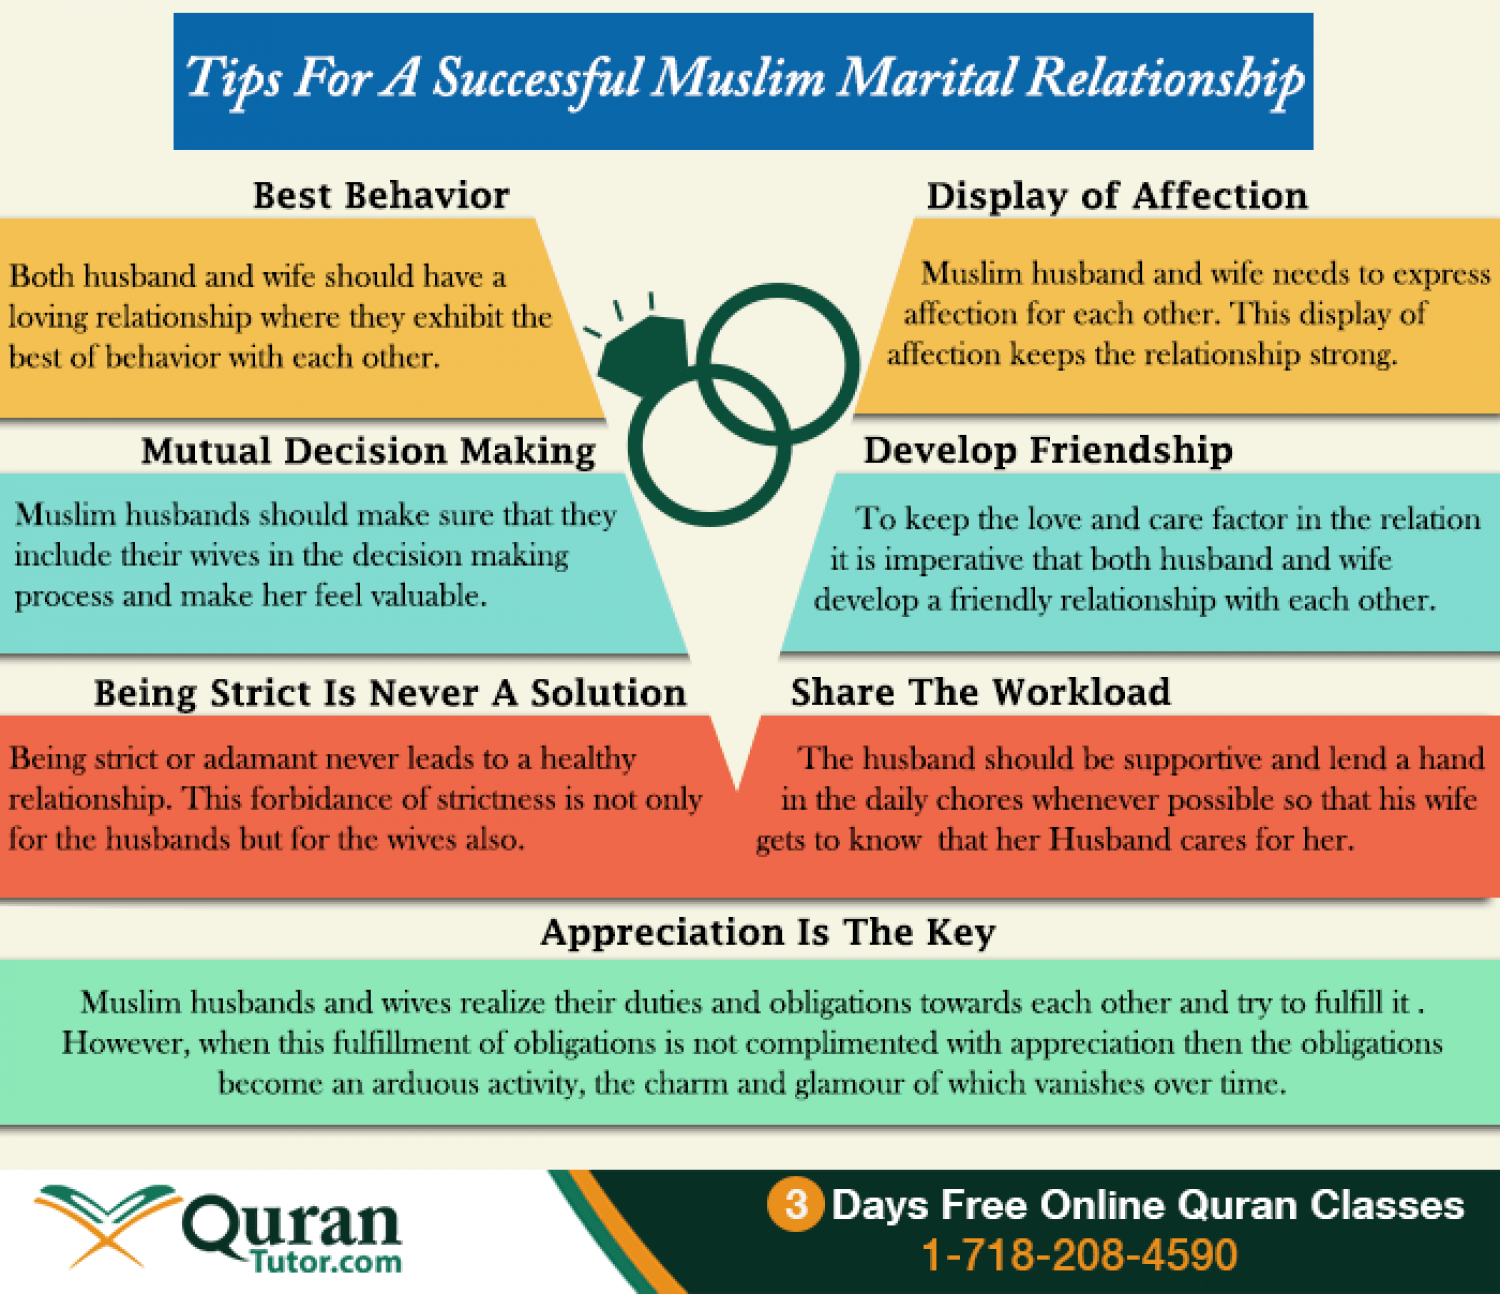 Tips For A Successful Muslim Marital Relationship